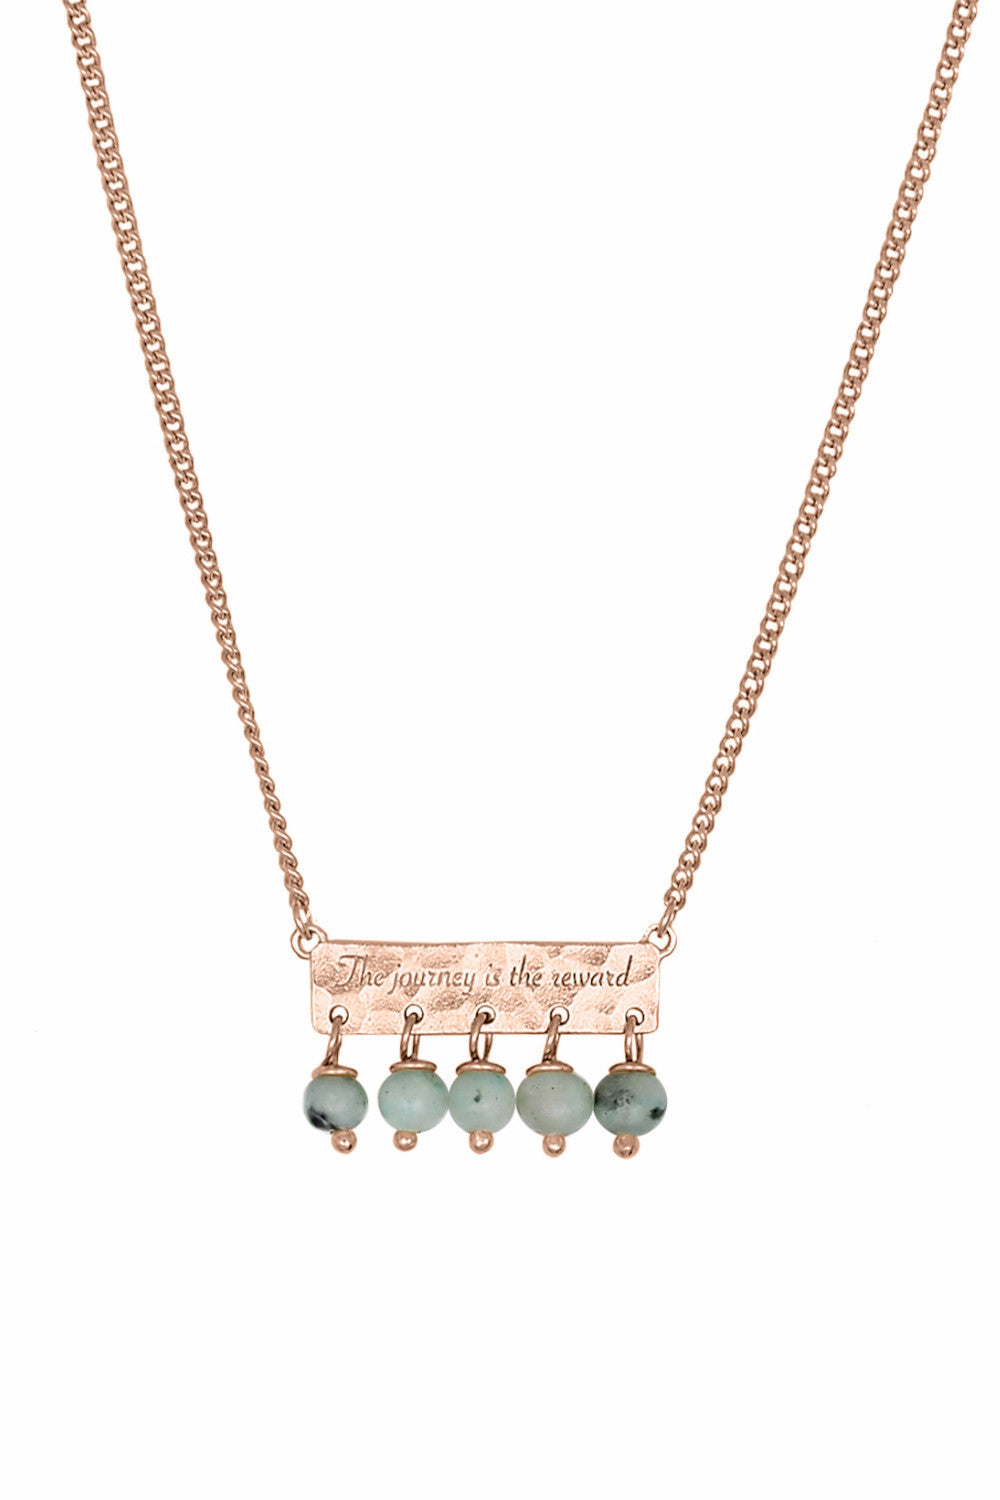 Nicole Fendel Frida Bead Bar Necklace - Rose Gold